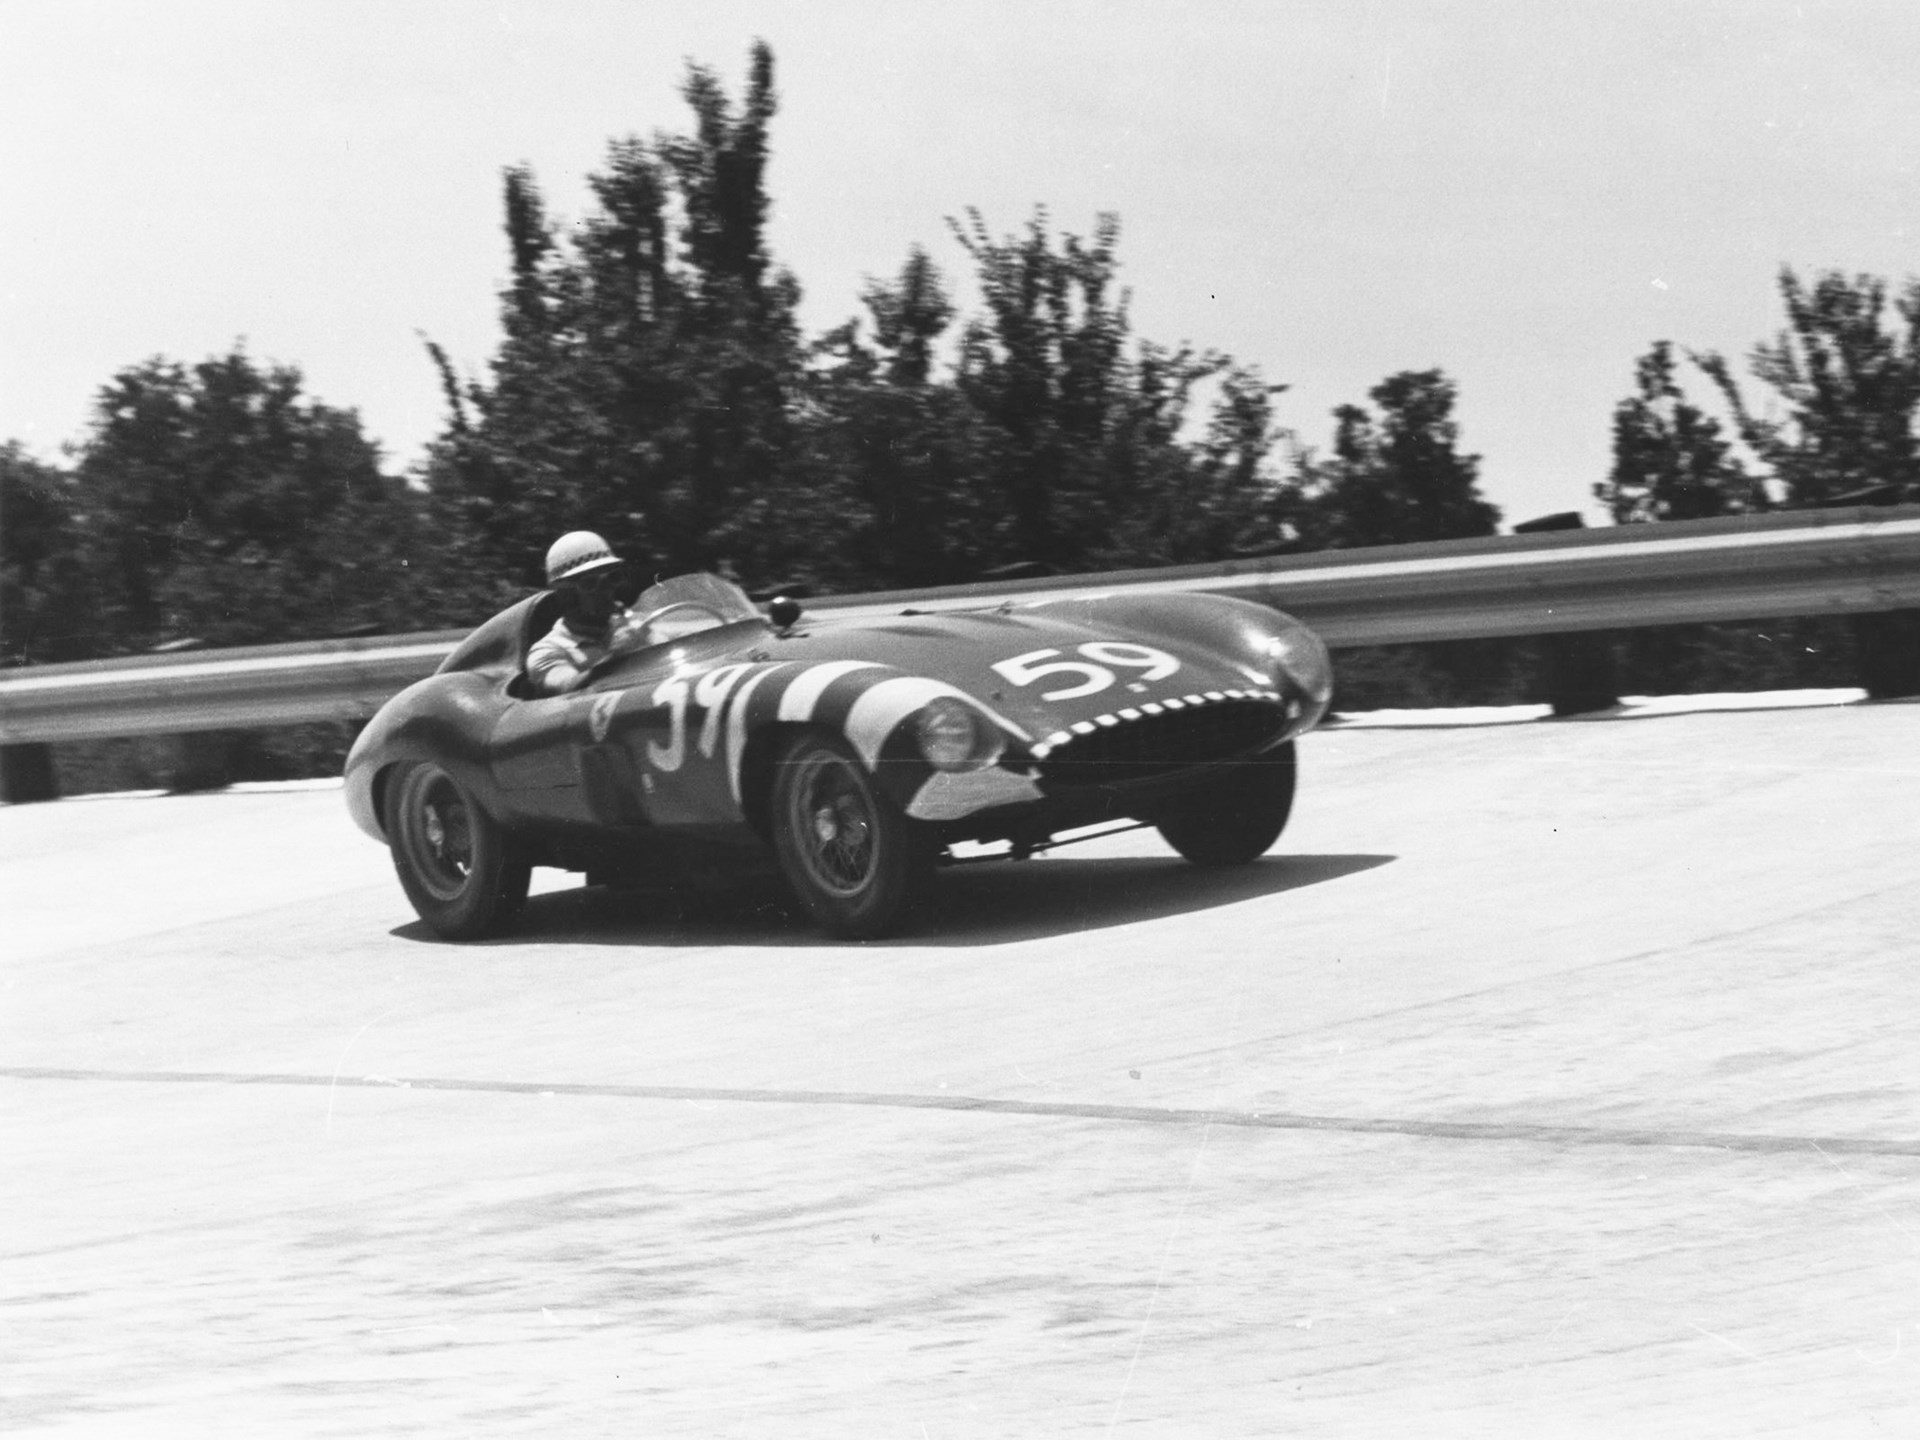 Chassis no. 0534 MD as seen at the IV Gran Premio Supercortemaggiore in June of 1956.